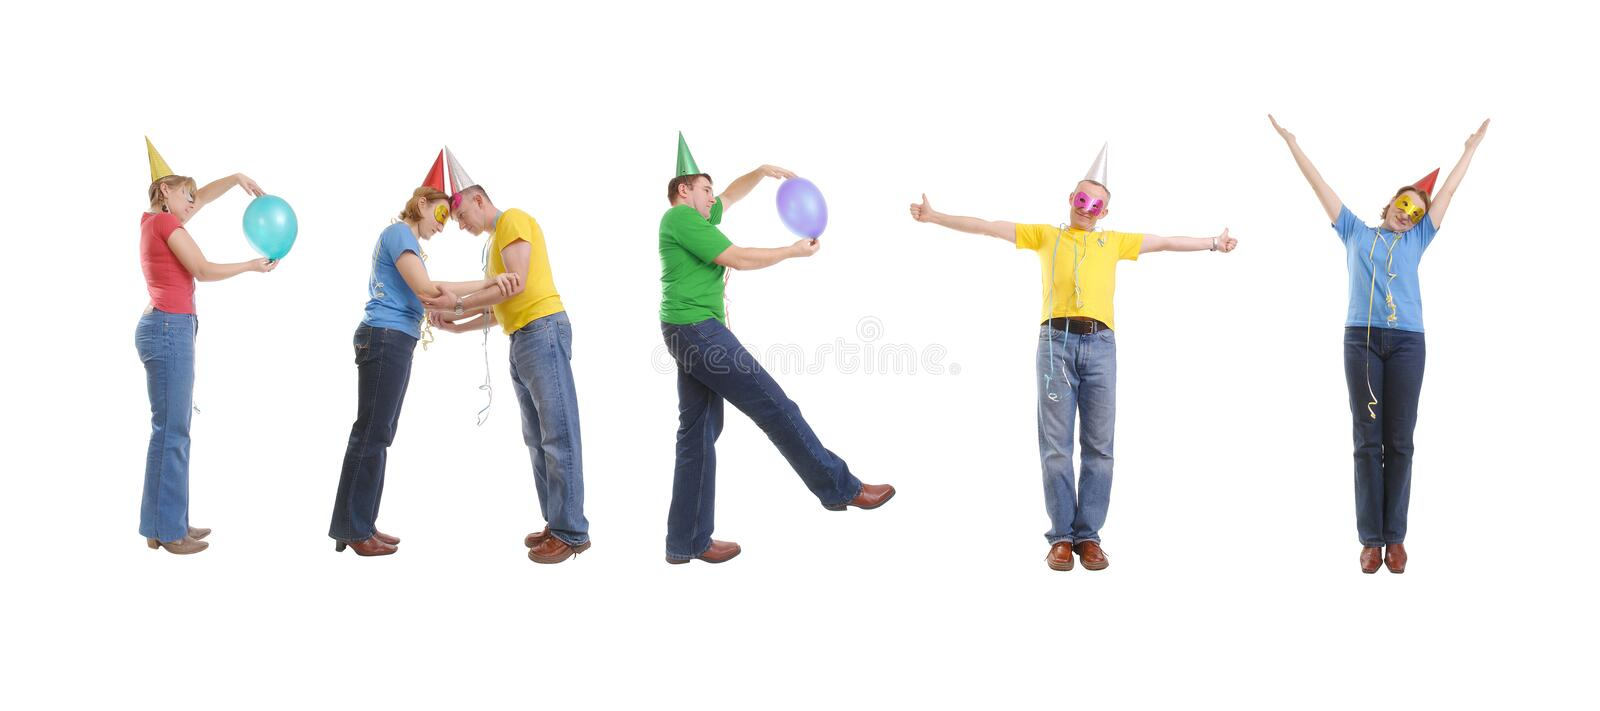 Party group stock photography